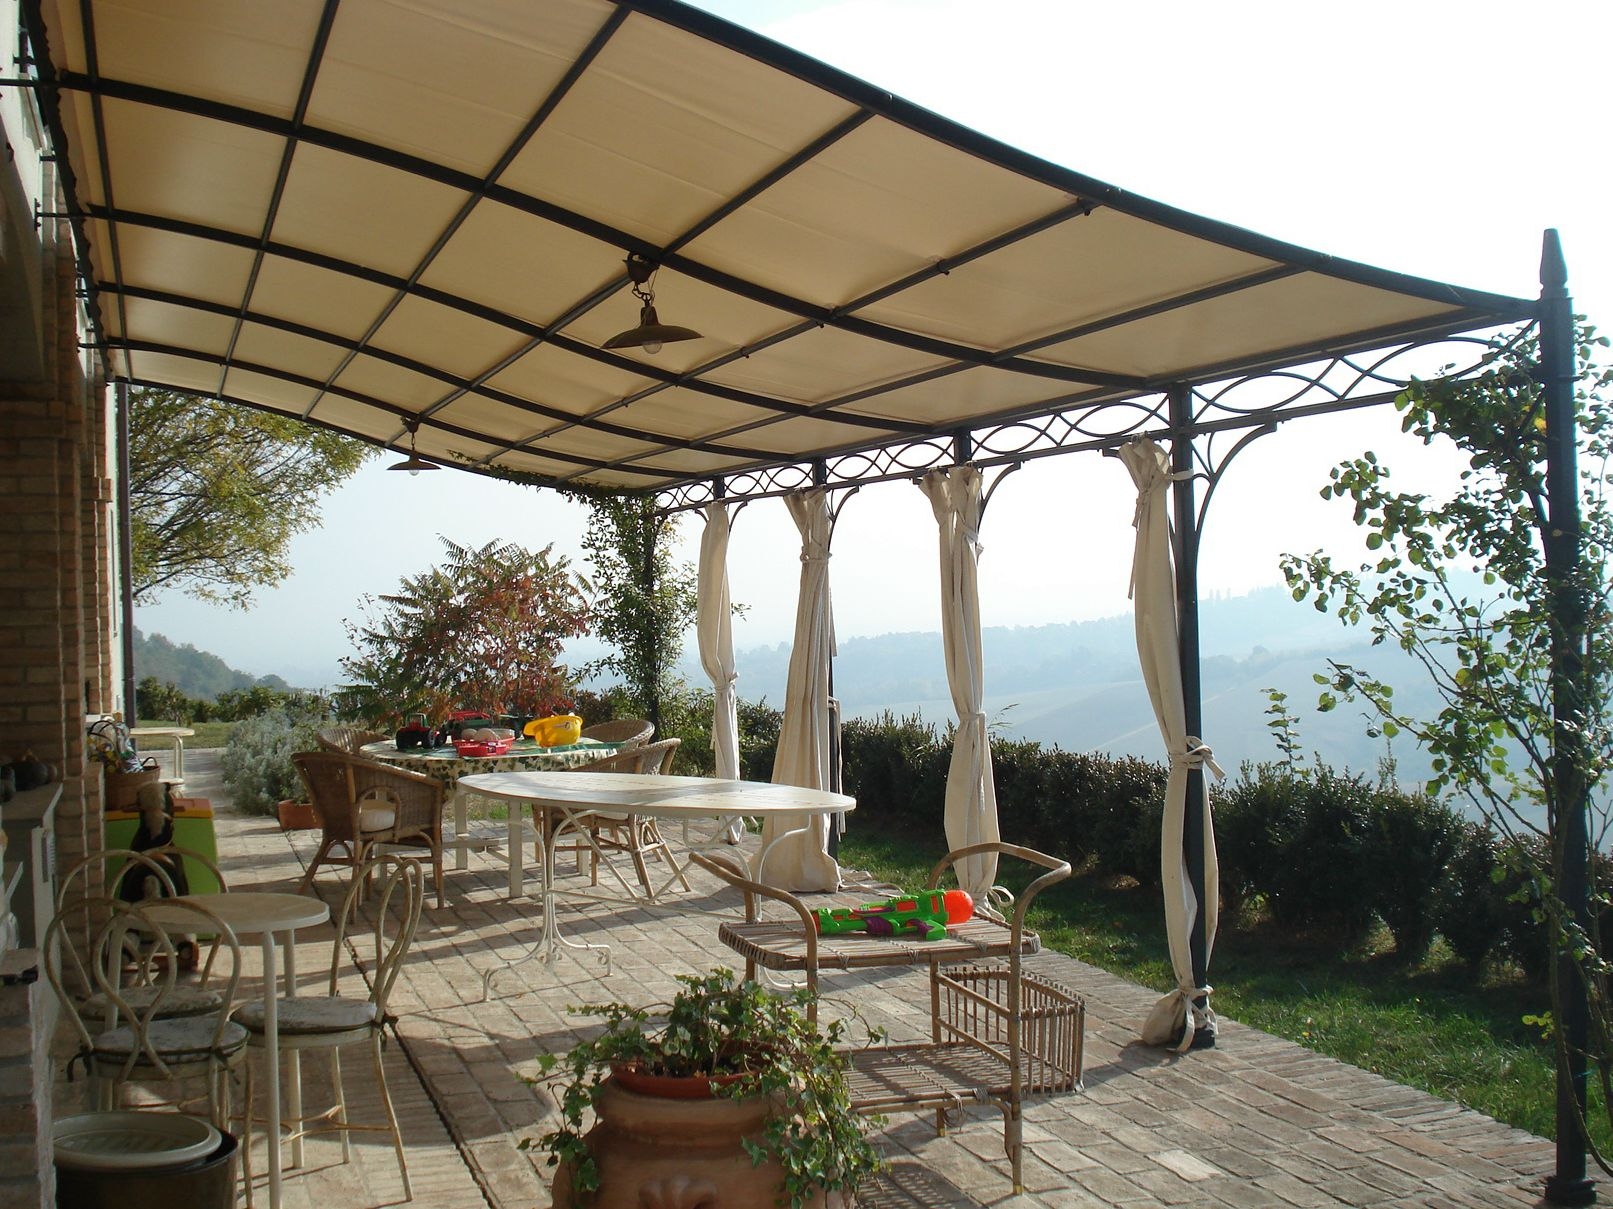 Discover All The Information About Product Wall Mounted Pergola Wrought Iron Fabric Canopy Custom MALATESTA